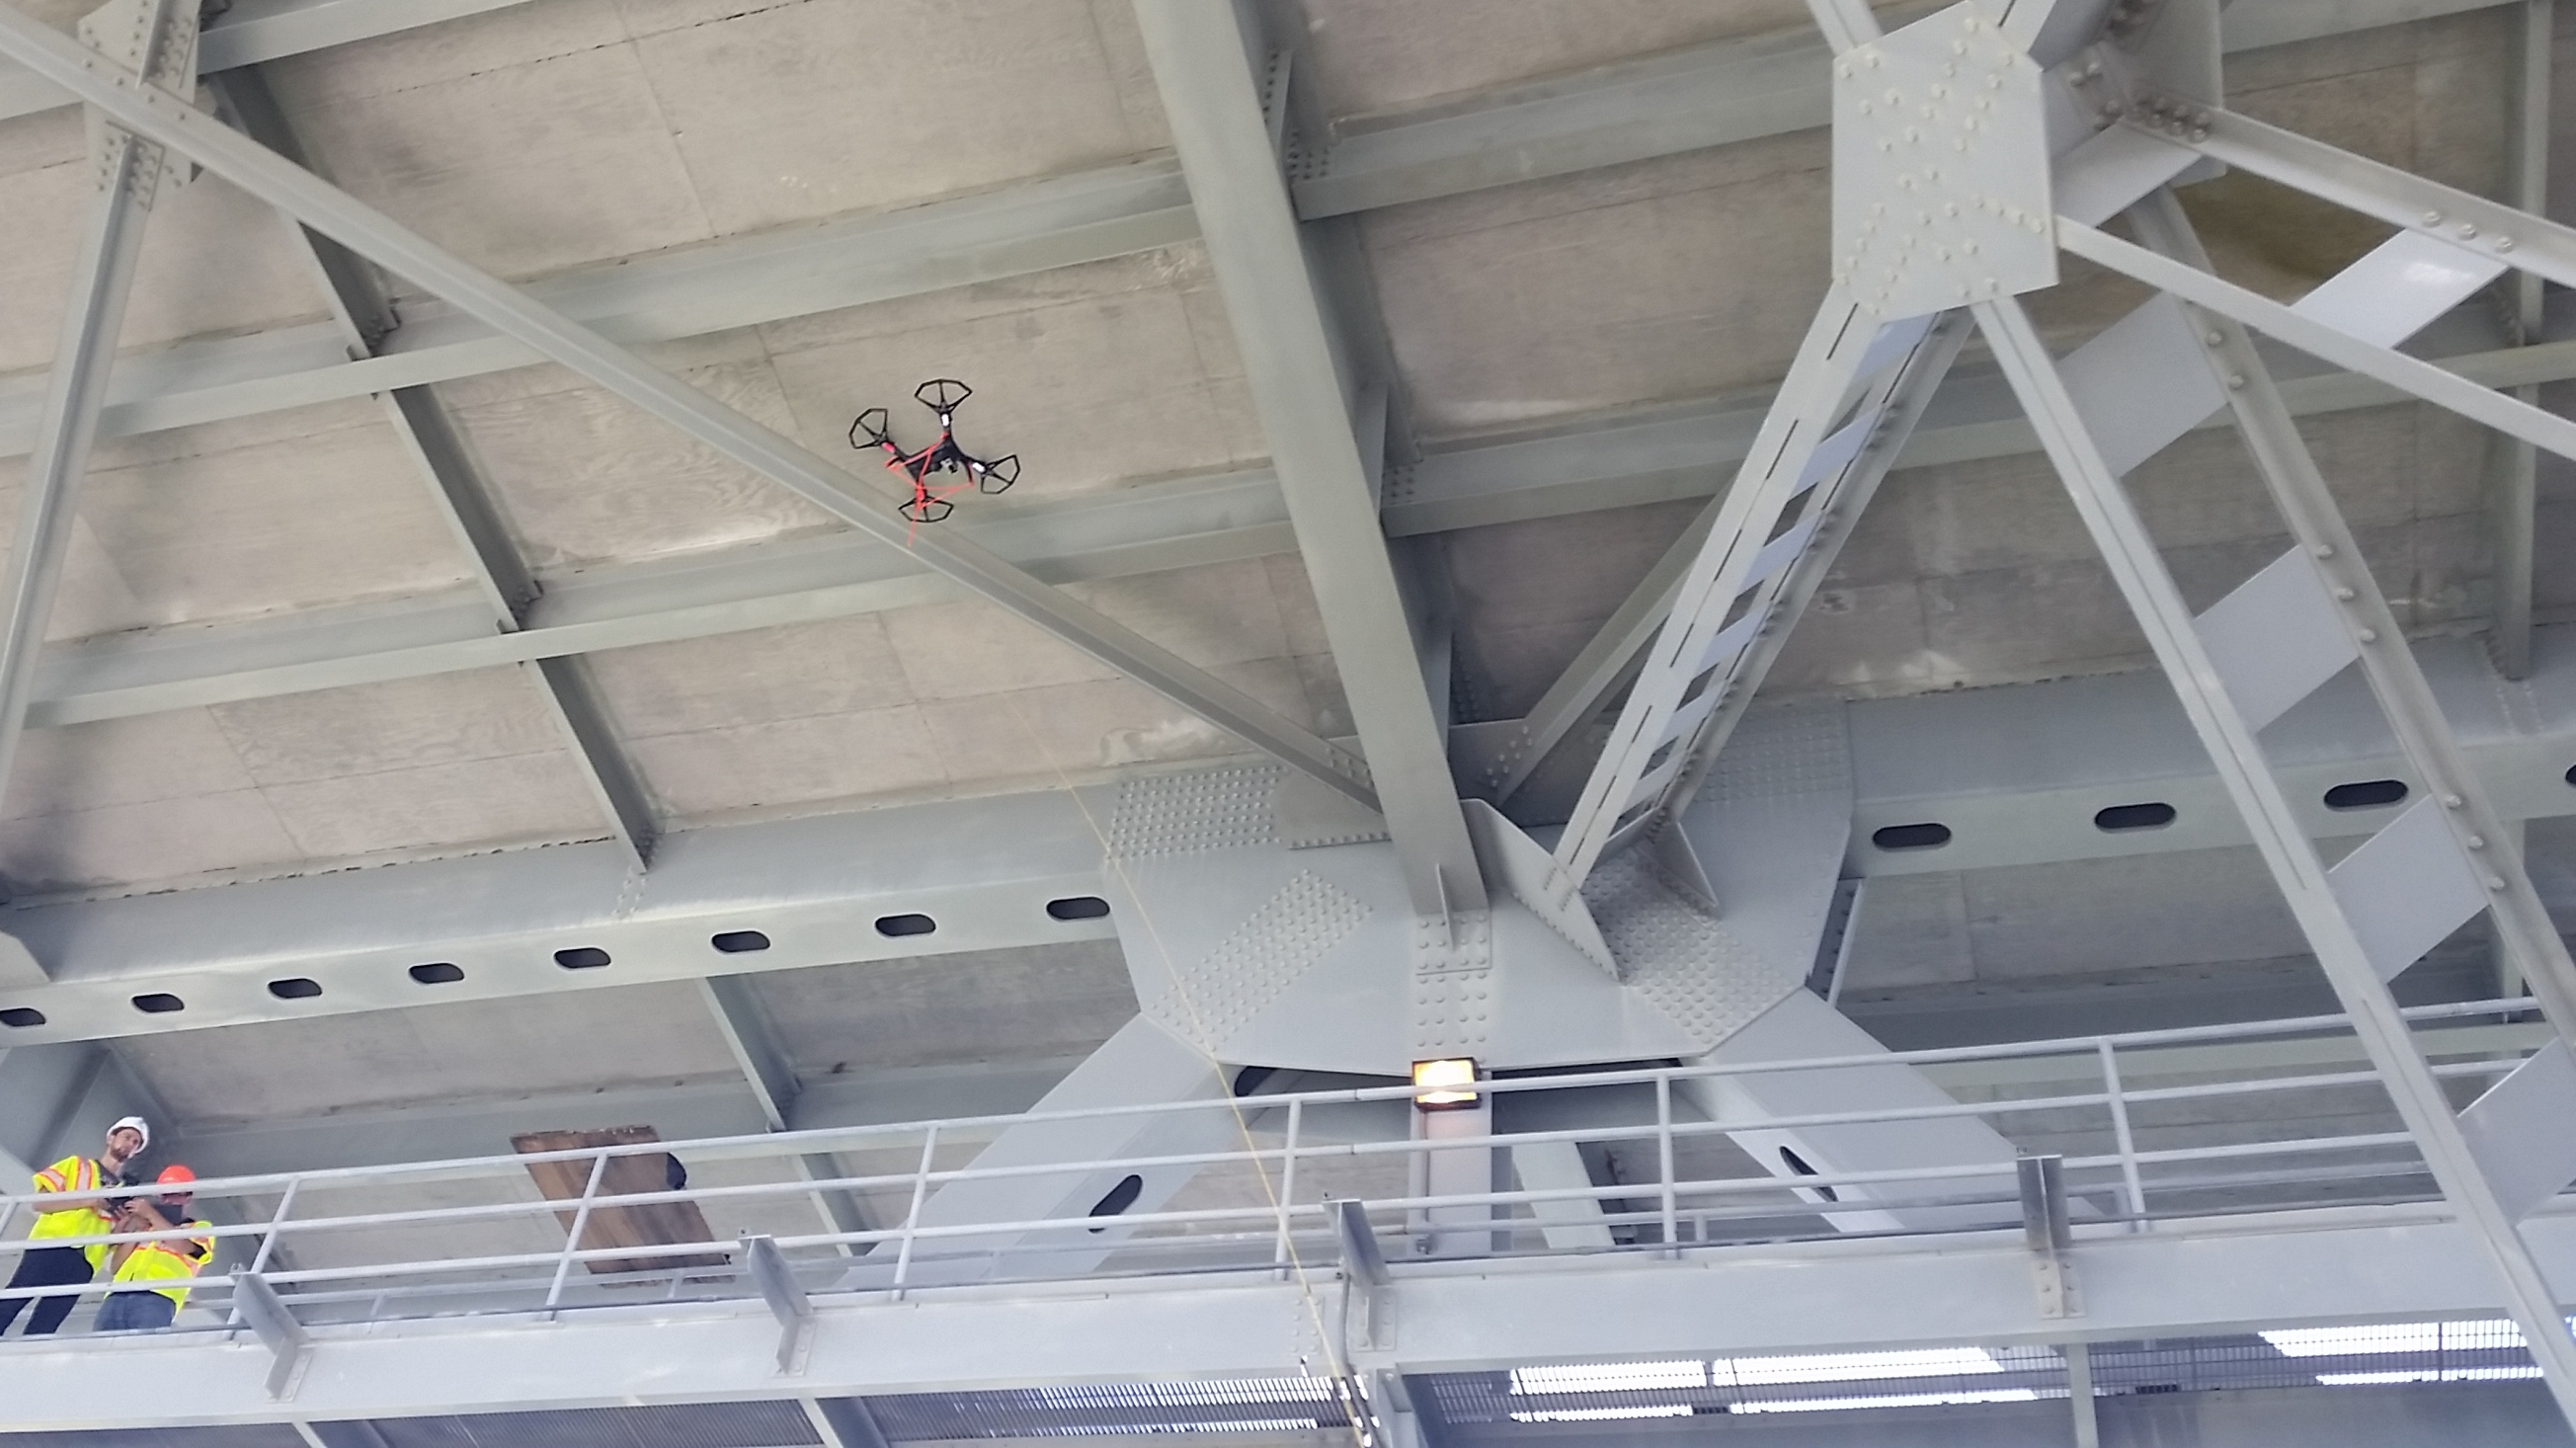 Quadcopter at Coleman Bridge